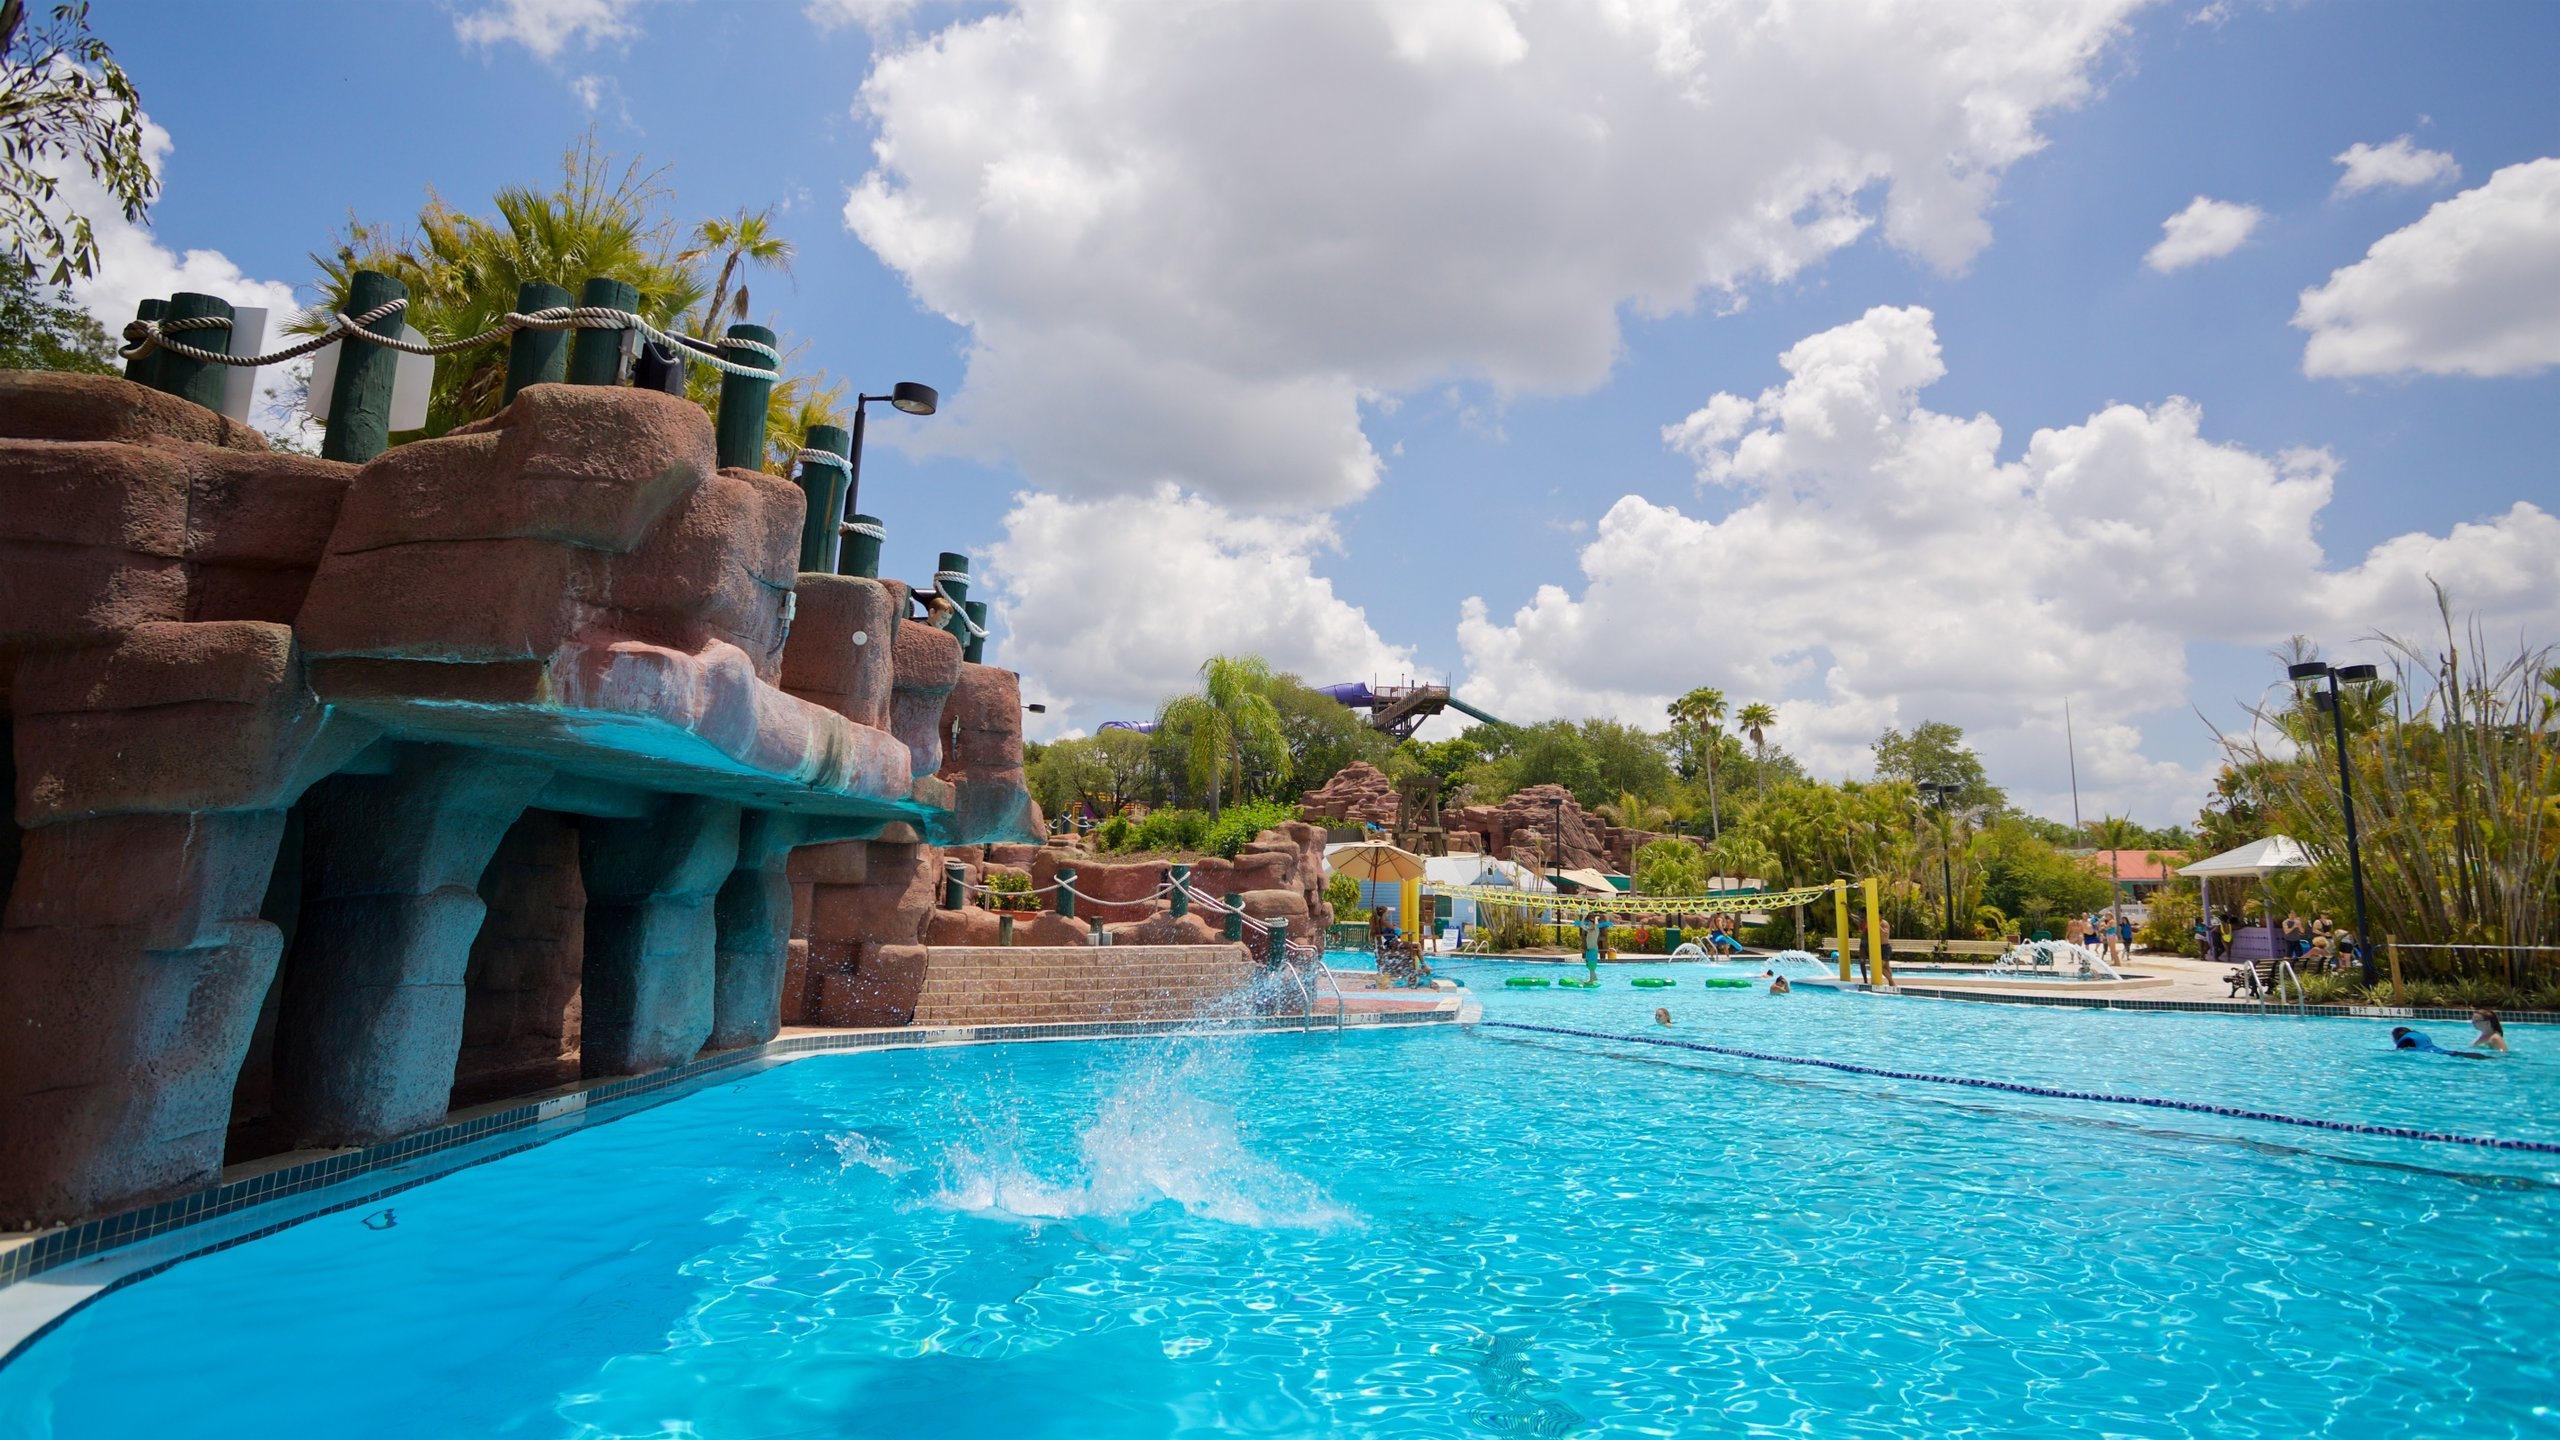 Adventure Island Tampa: Top 10 Hotels With An Indoor Pool In Tampa, FL $80